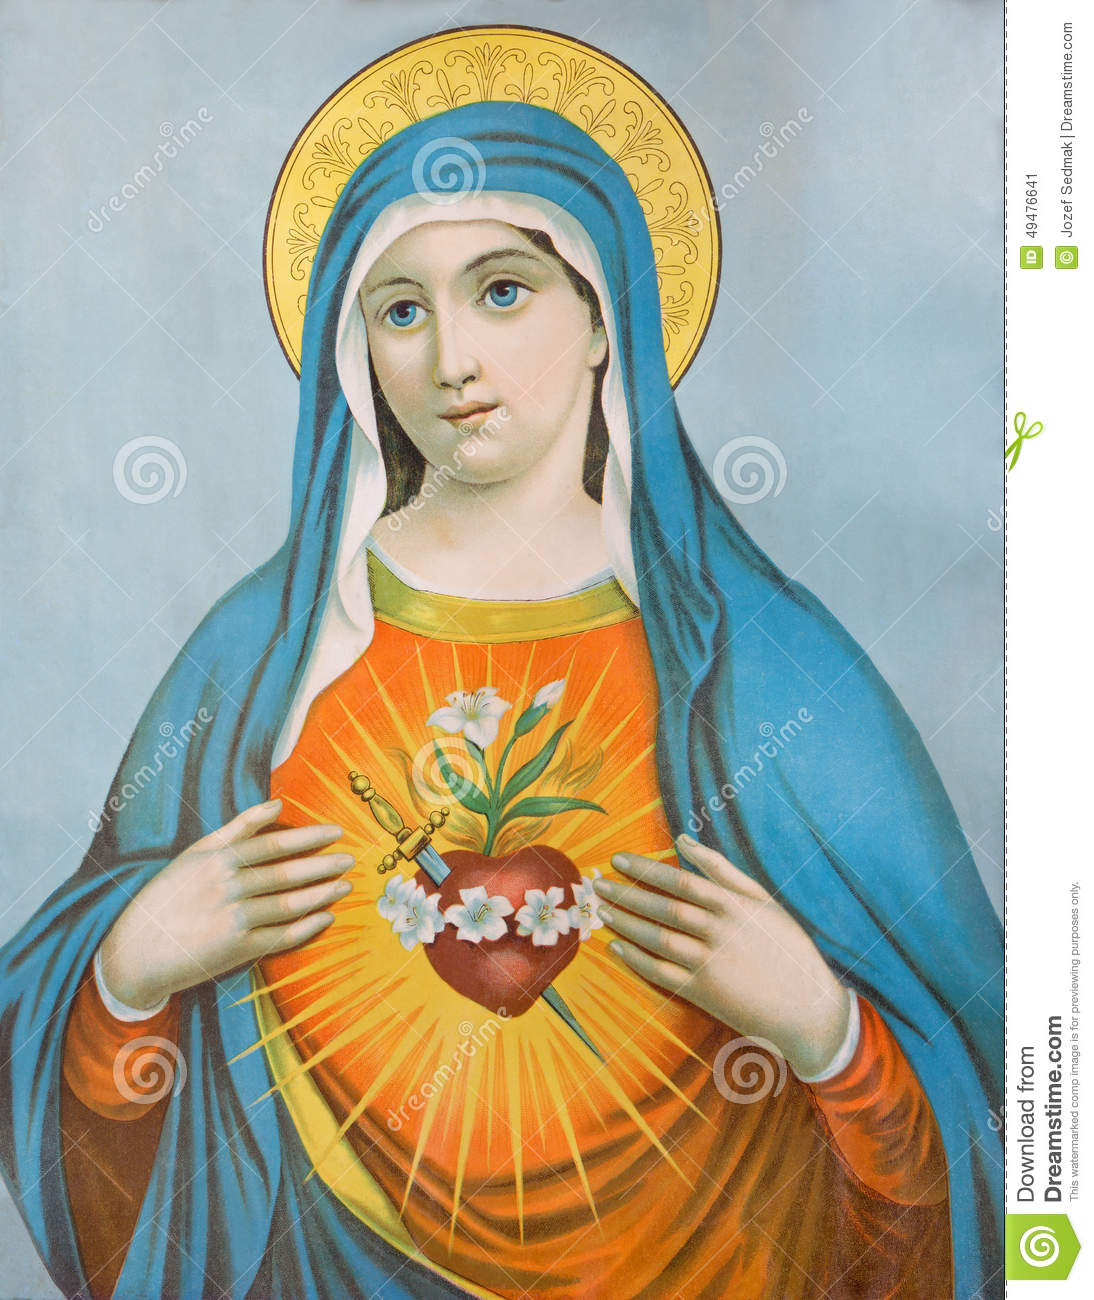 The Heart Of Virgin Mary. Typical Catholic Image (in My